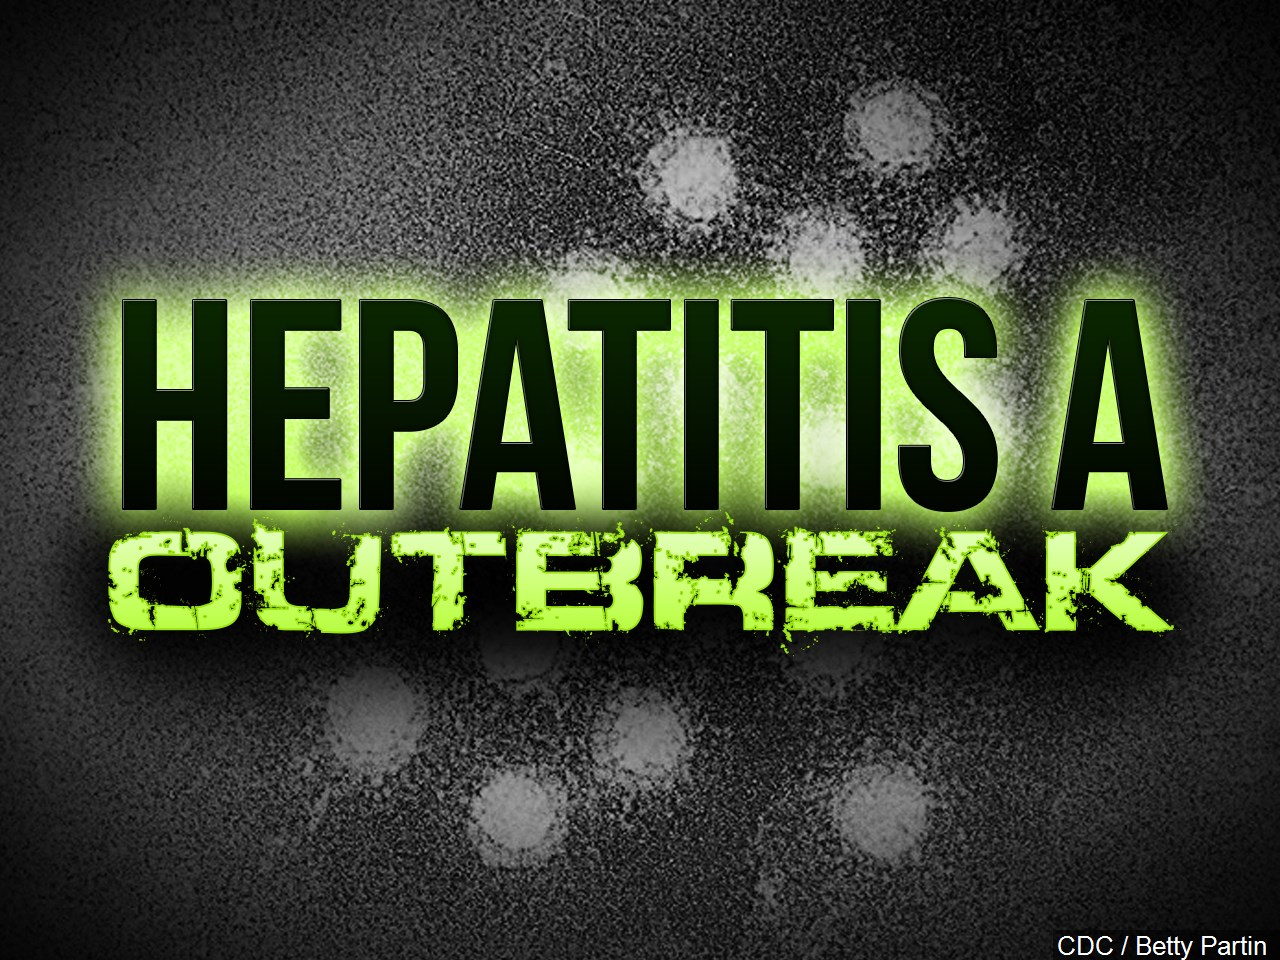 ADH: Washington County Hepatitis A Case Linked To Statewide Outbreak